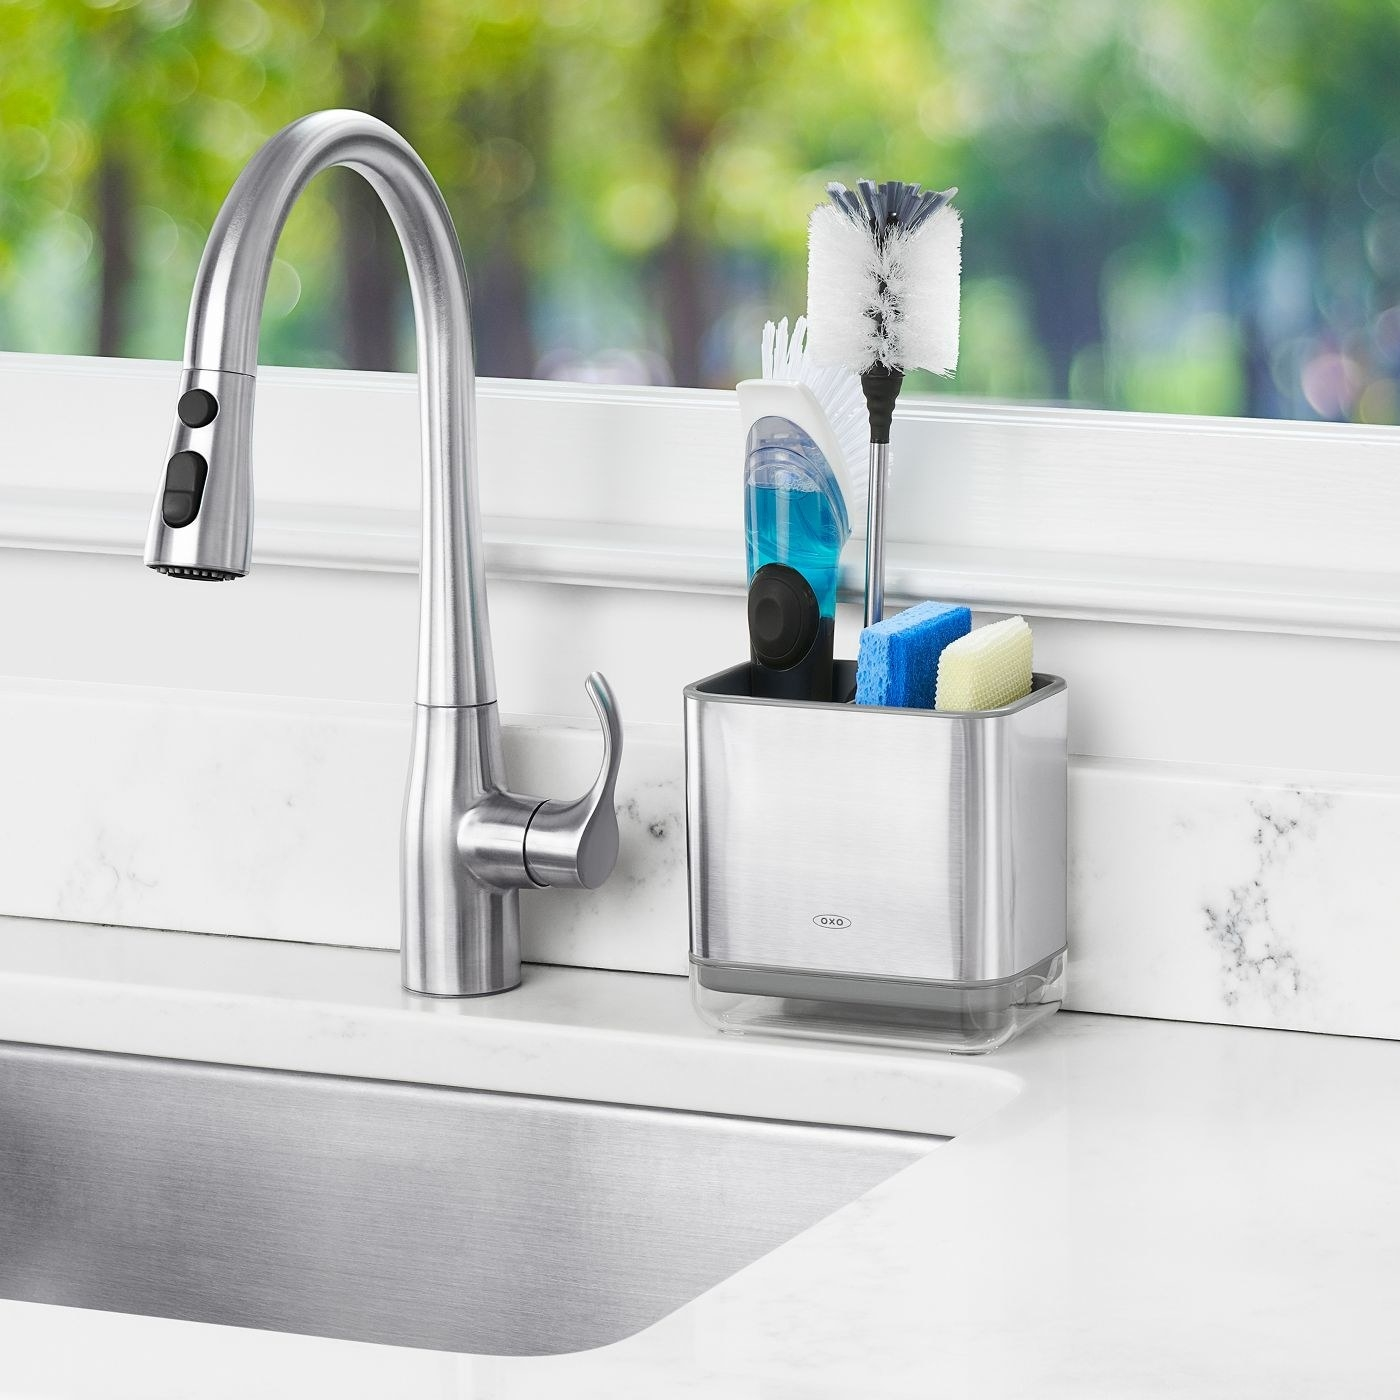 The caddy, which is rectangular and brushed stainless steel, slightly elevated with a small drip tray